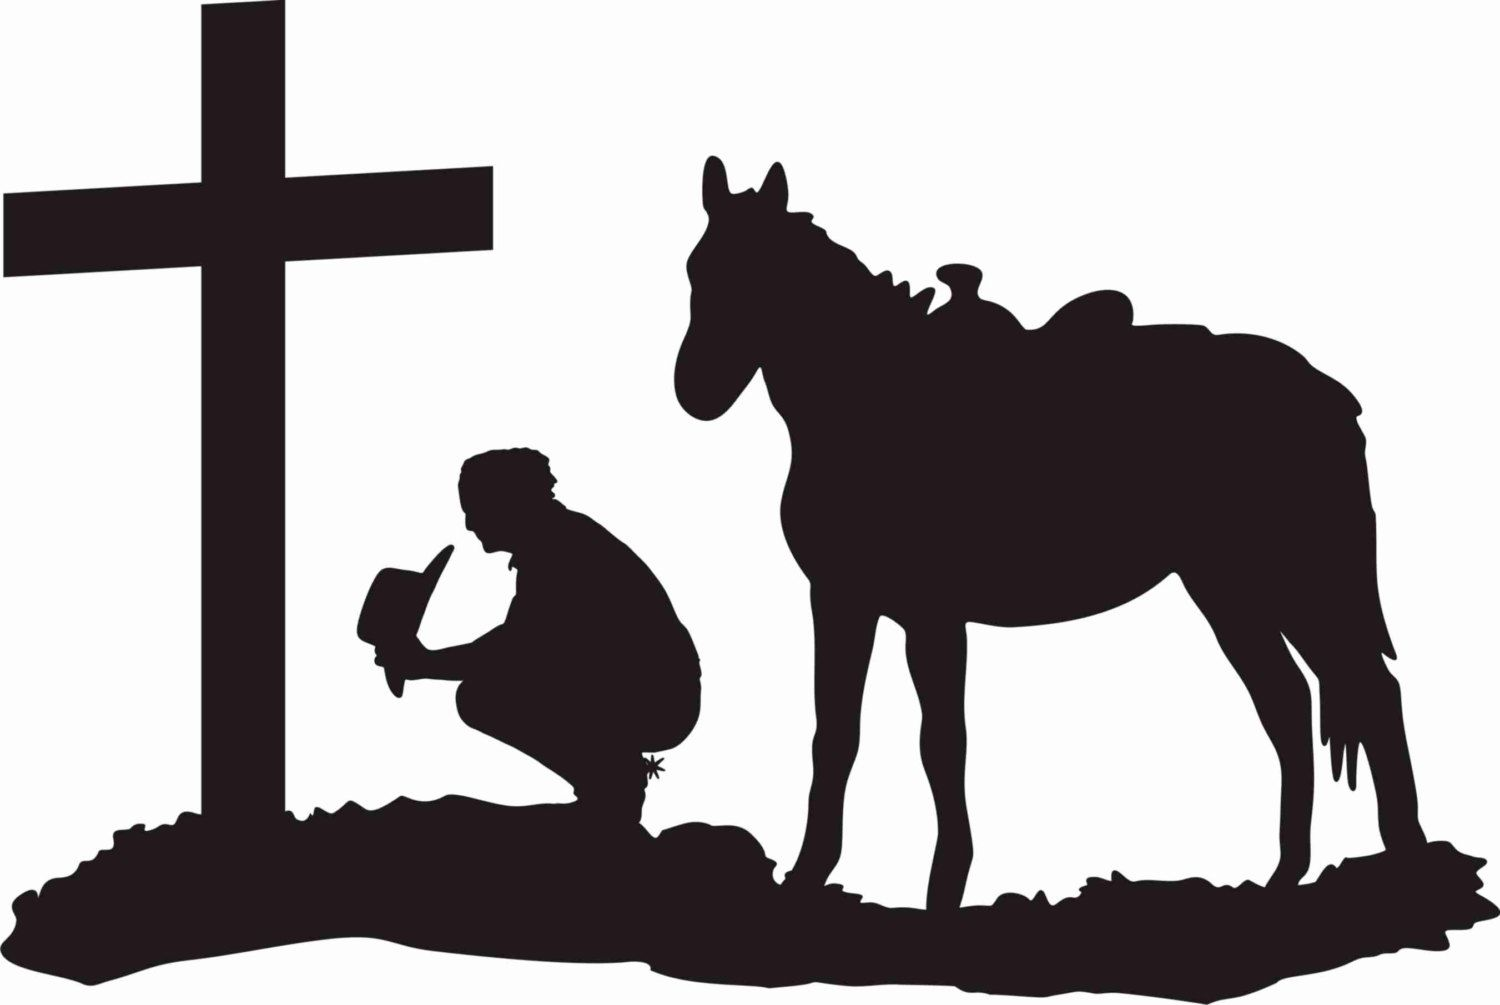 Cowboy and his horse looking out over the sunset clipart clipart transparent Cowboy at the cross praying, cowboy and horse kneeling at the cross ... clipart transparent